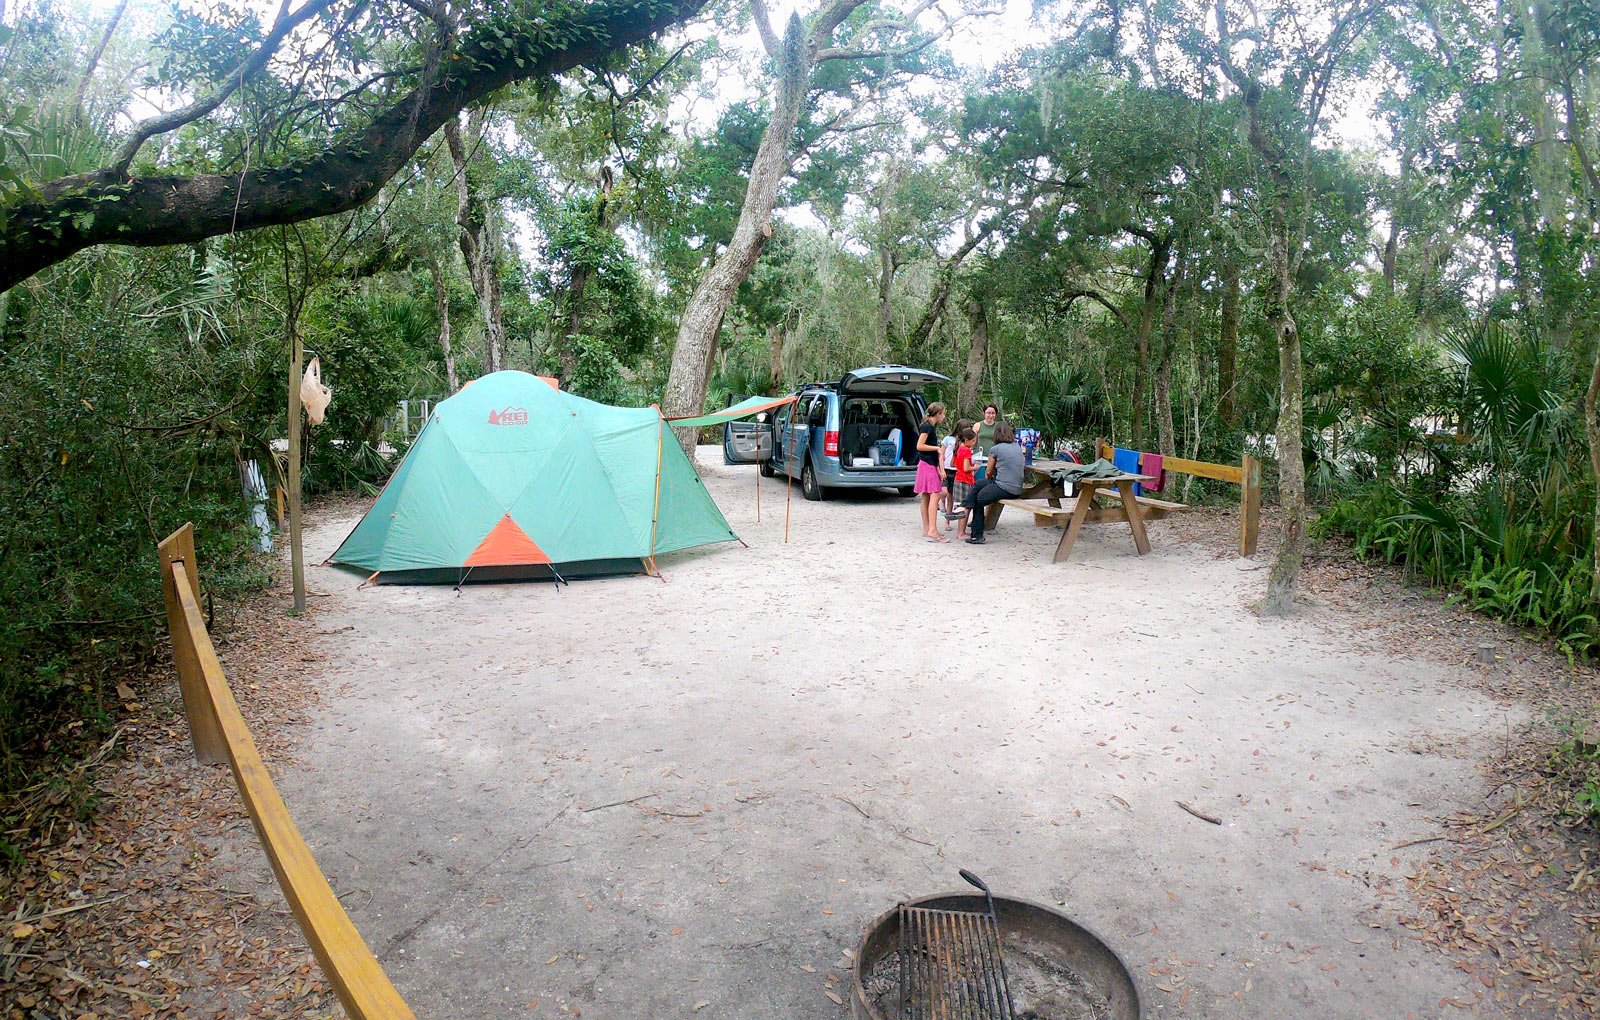 Green REI tent set up with van and family in spacious campsite in Anastasia State Park under canopy of trees near Saint Augustine, Florida